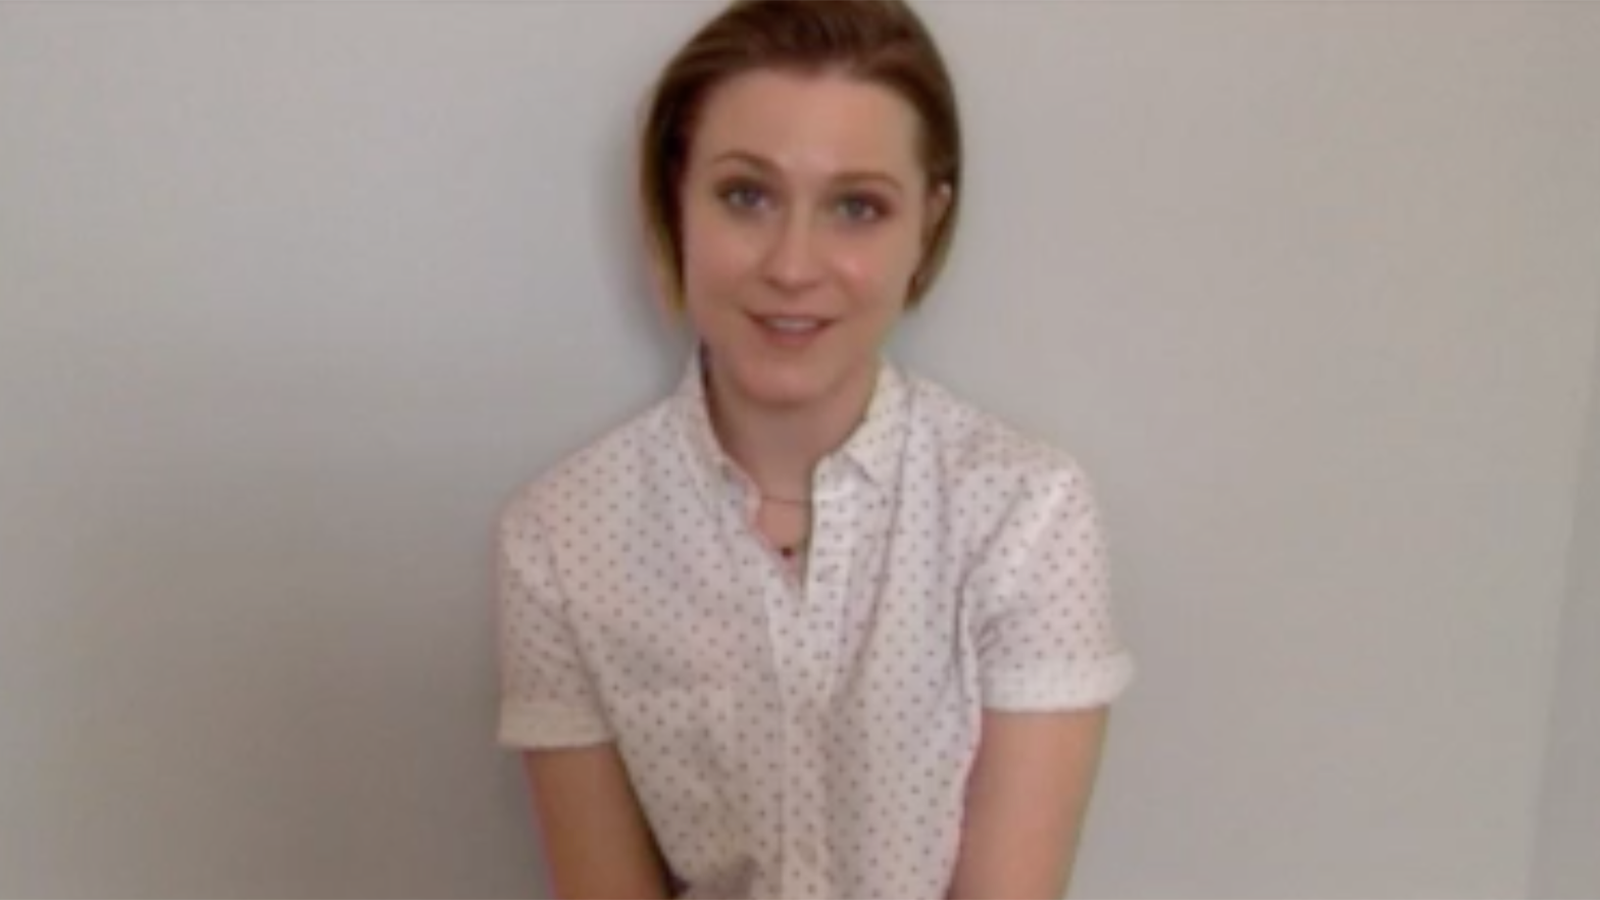 #BiPride: In Powerful Video, Evan Rachel Wood Highlights Issues Facing Bisexual Community